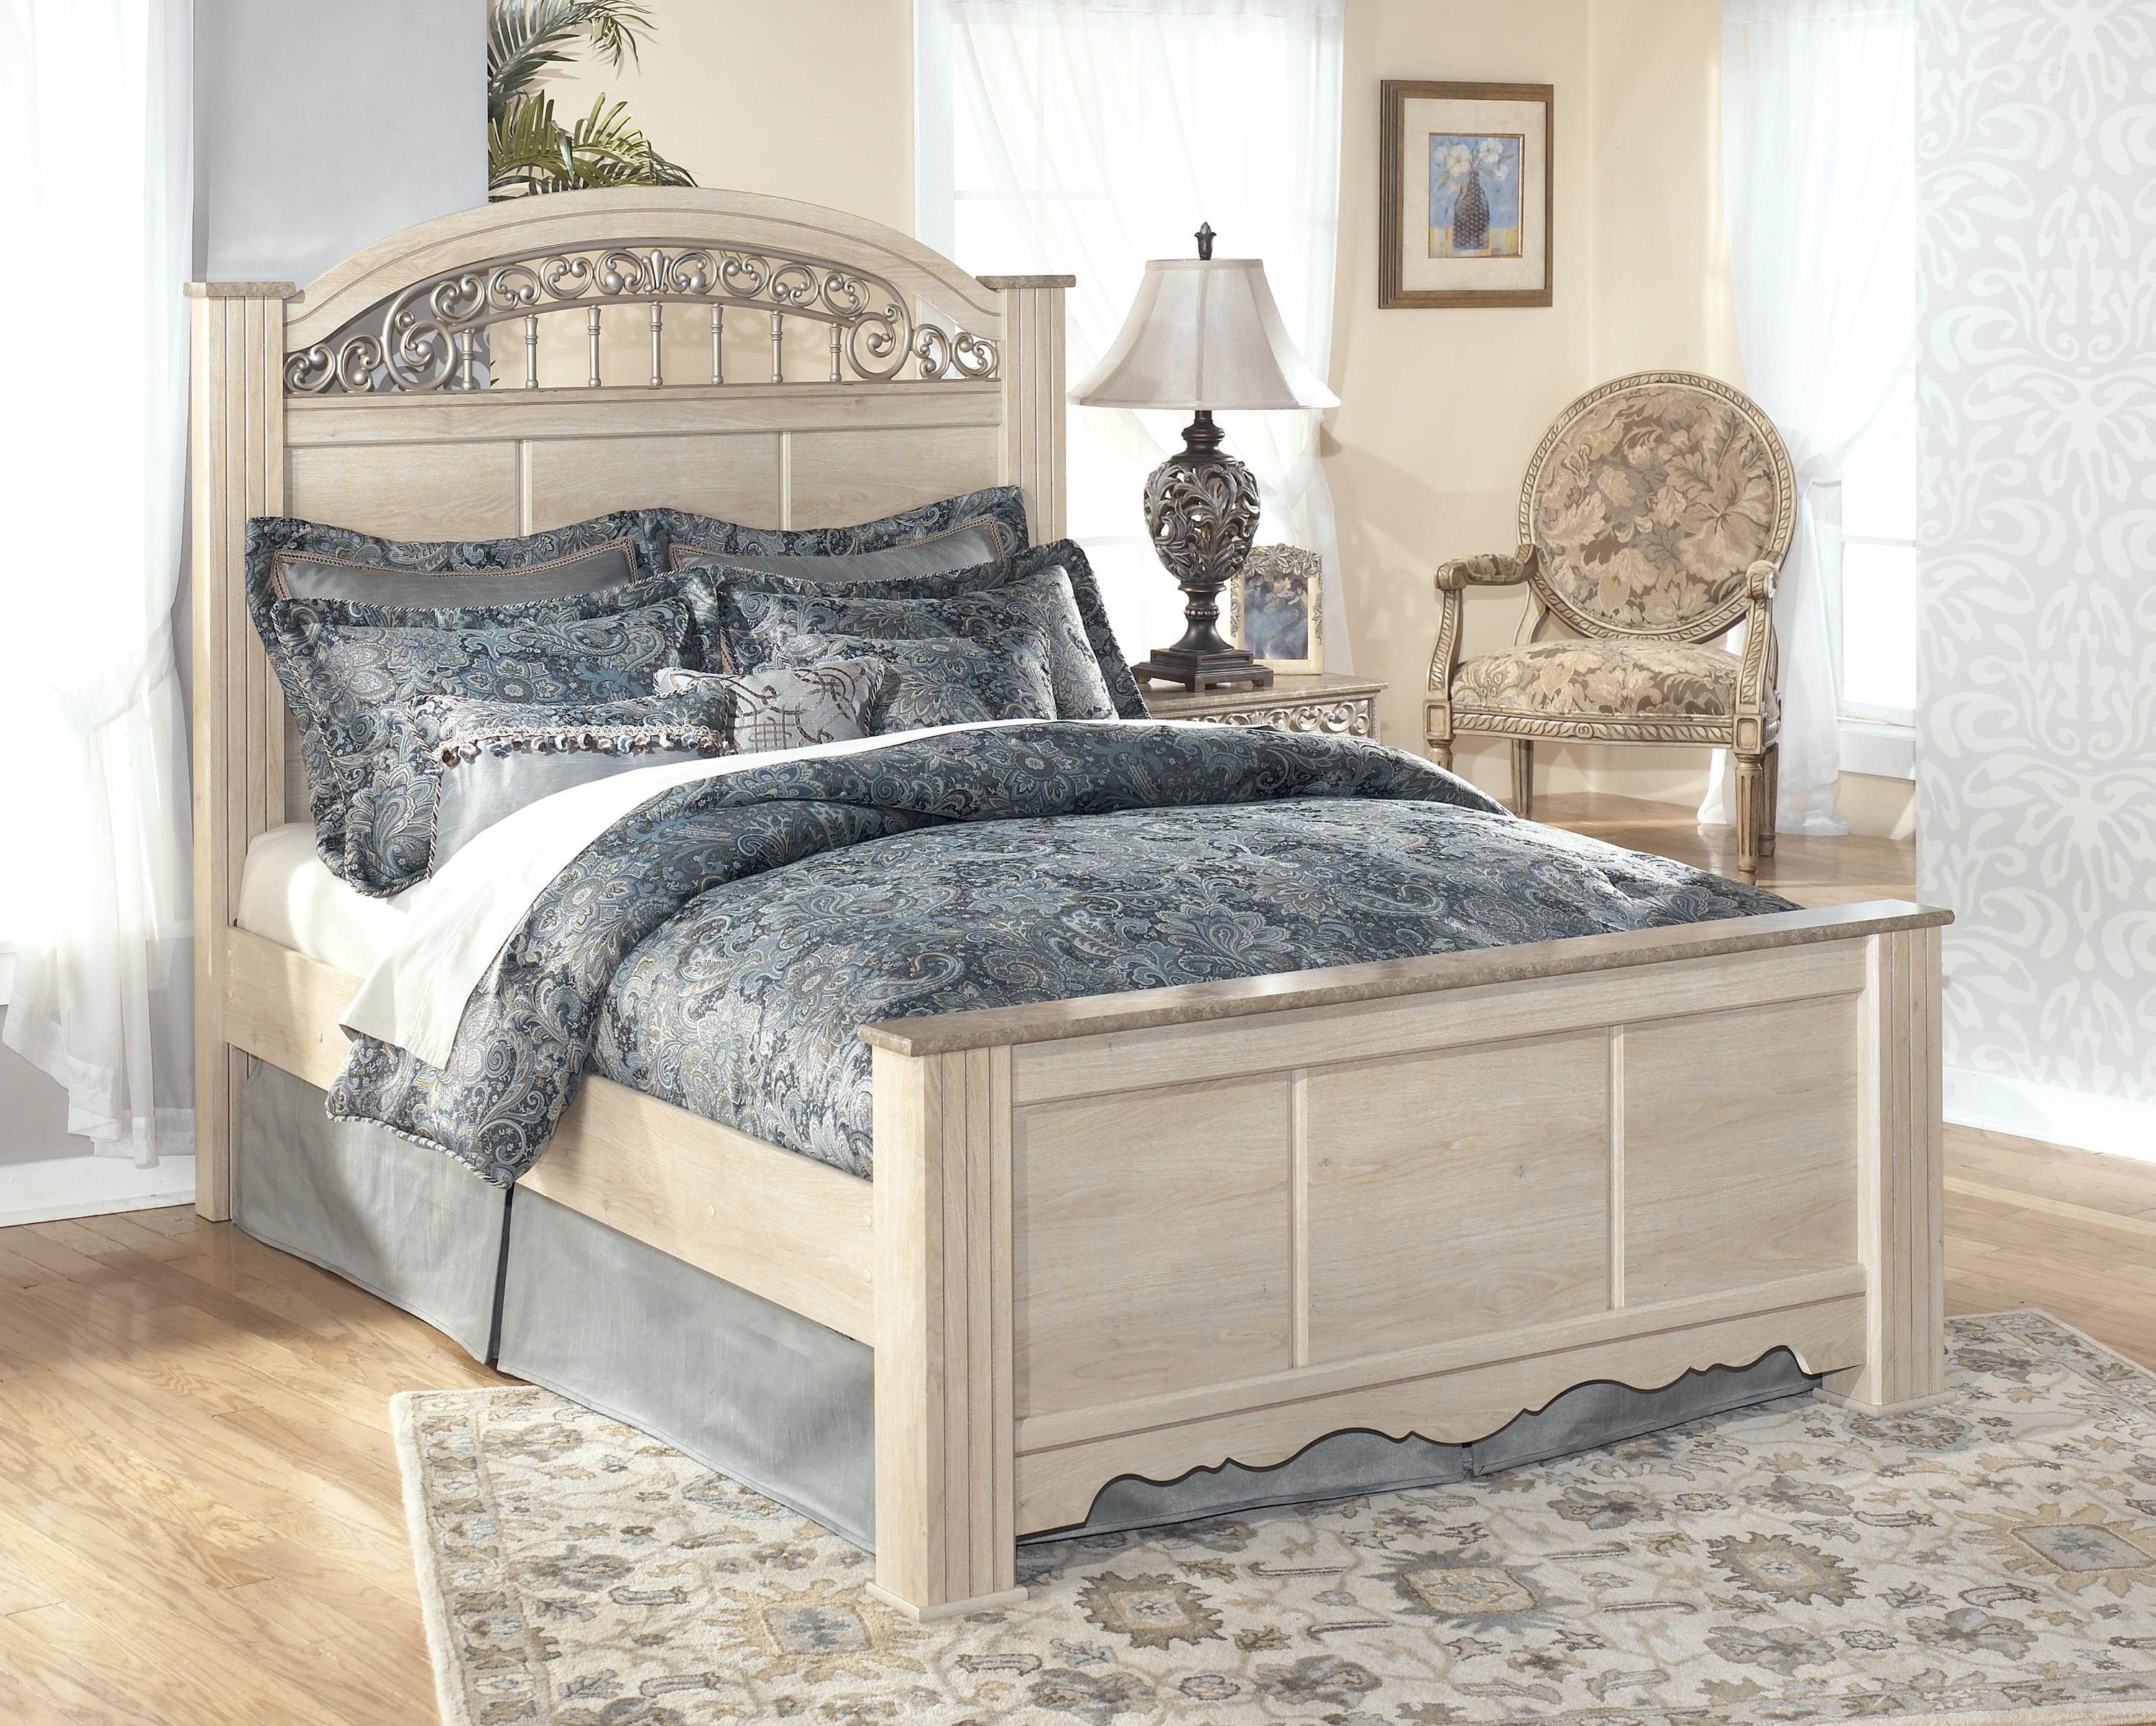 poster bed with ornate headboard insert